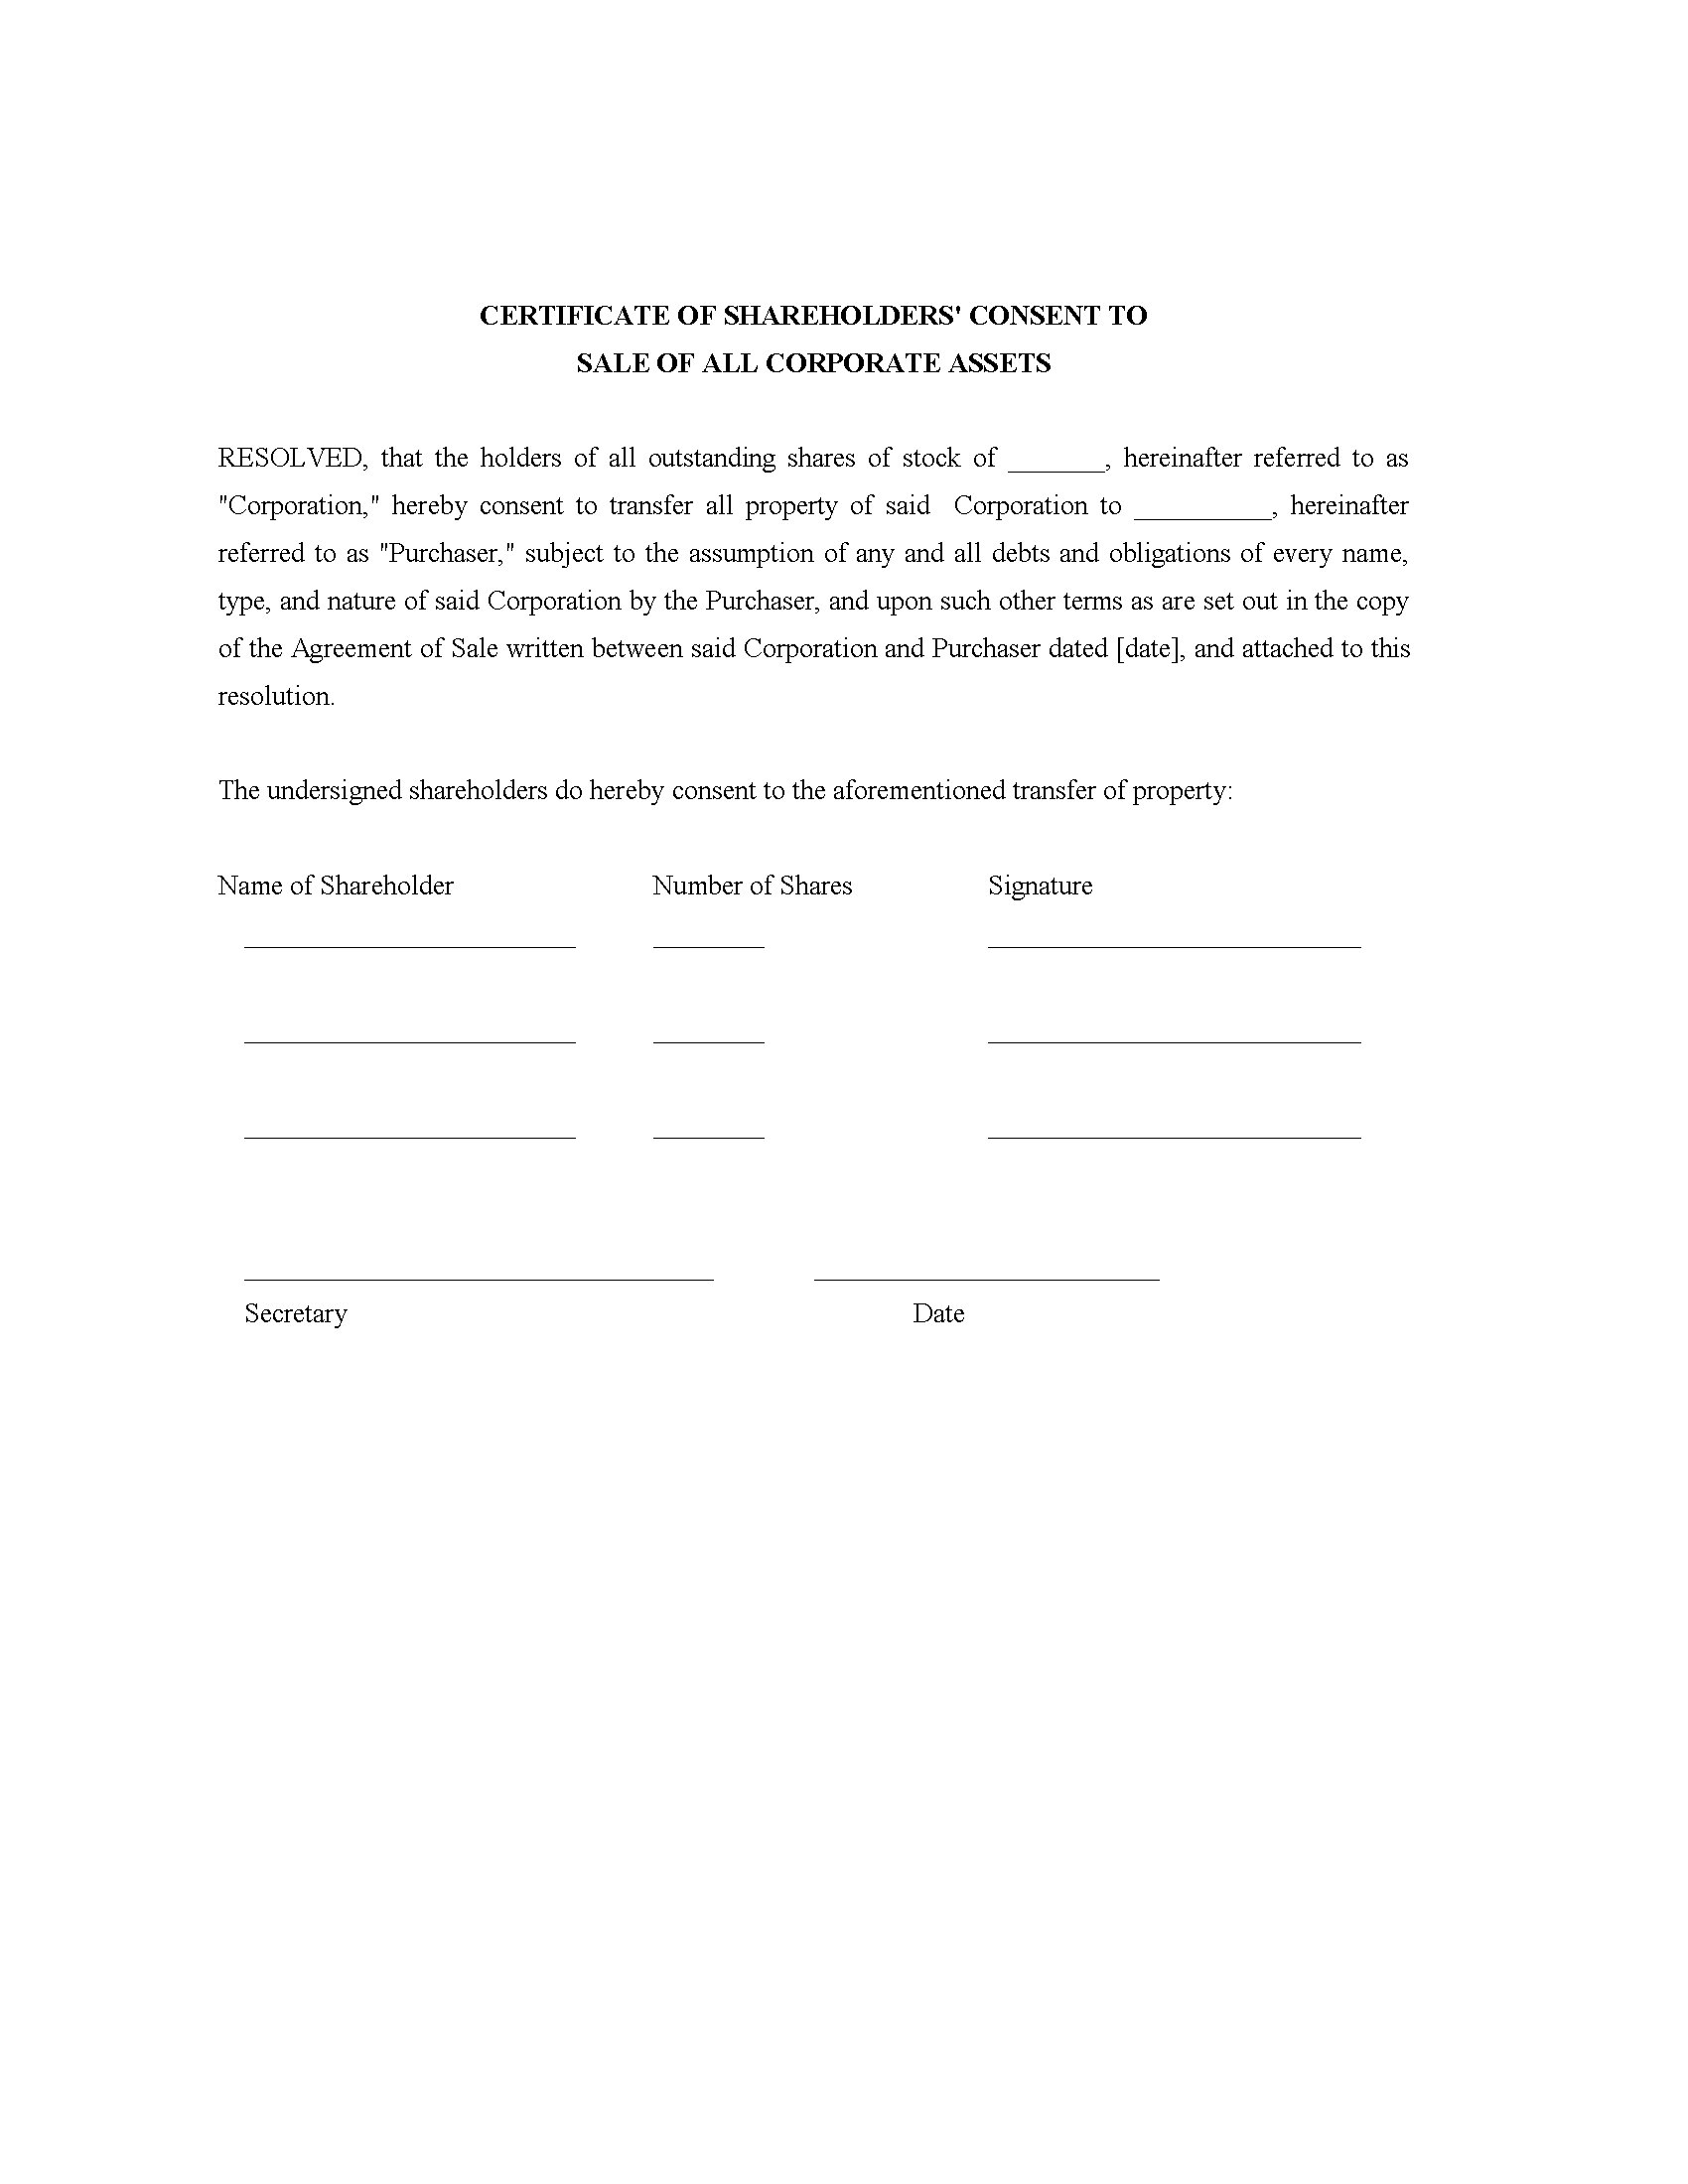 dubai police clearance application form download